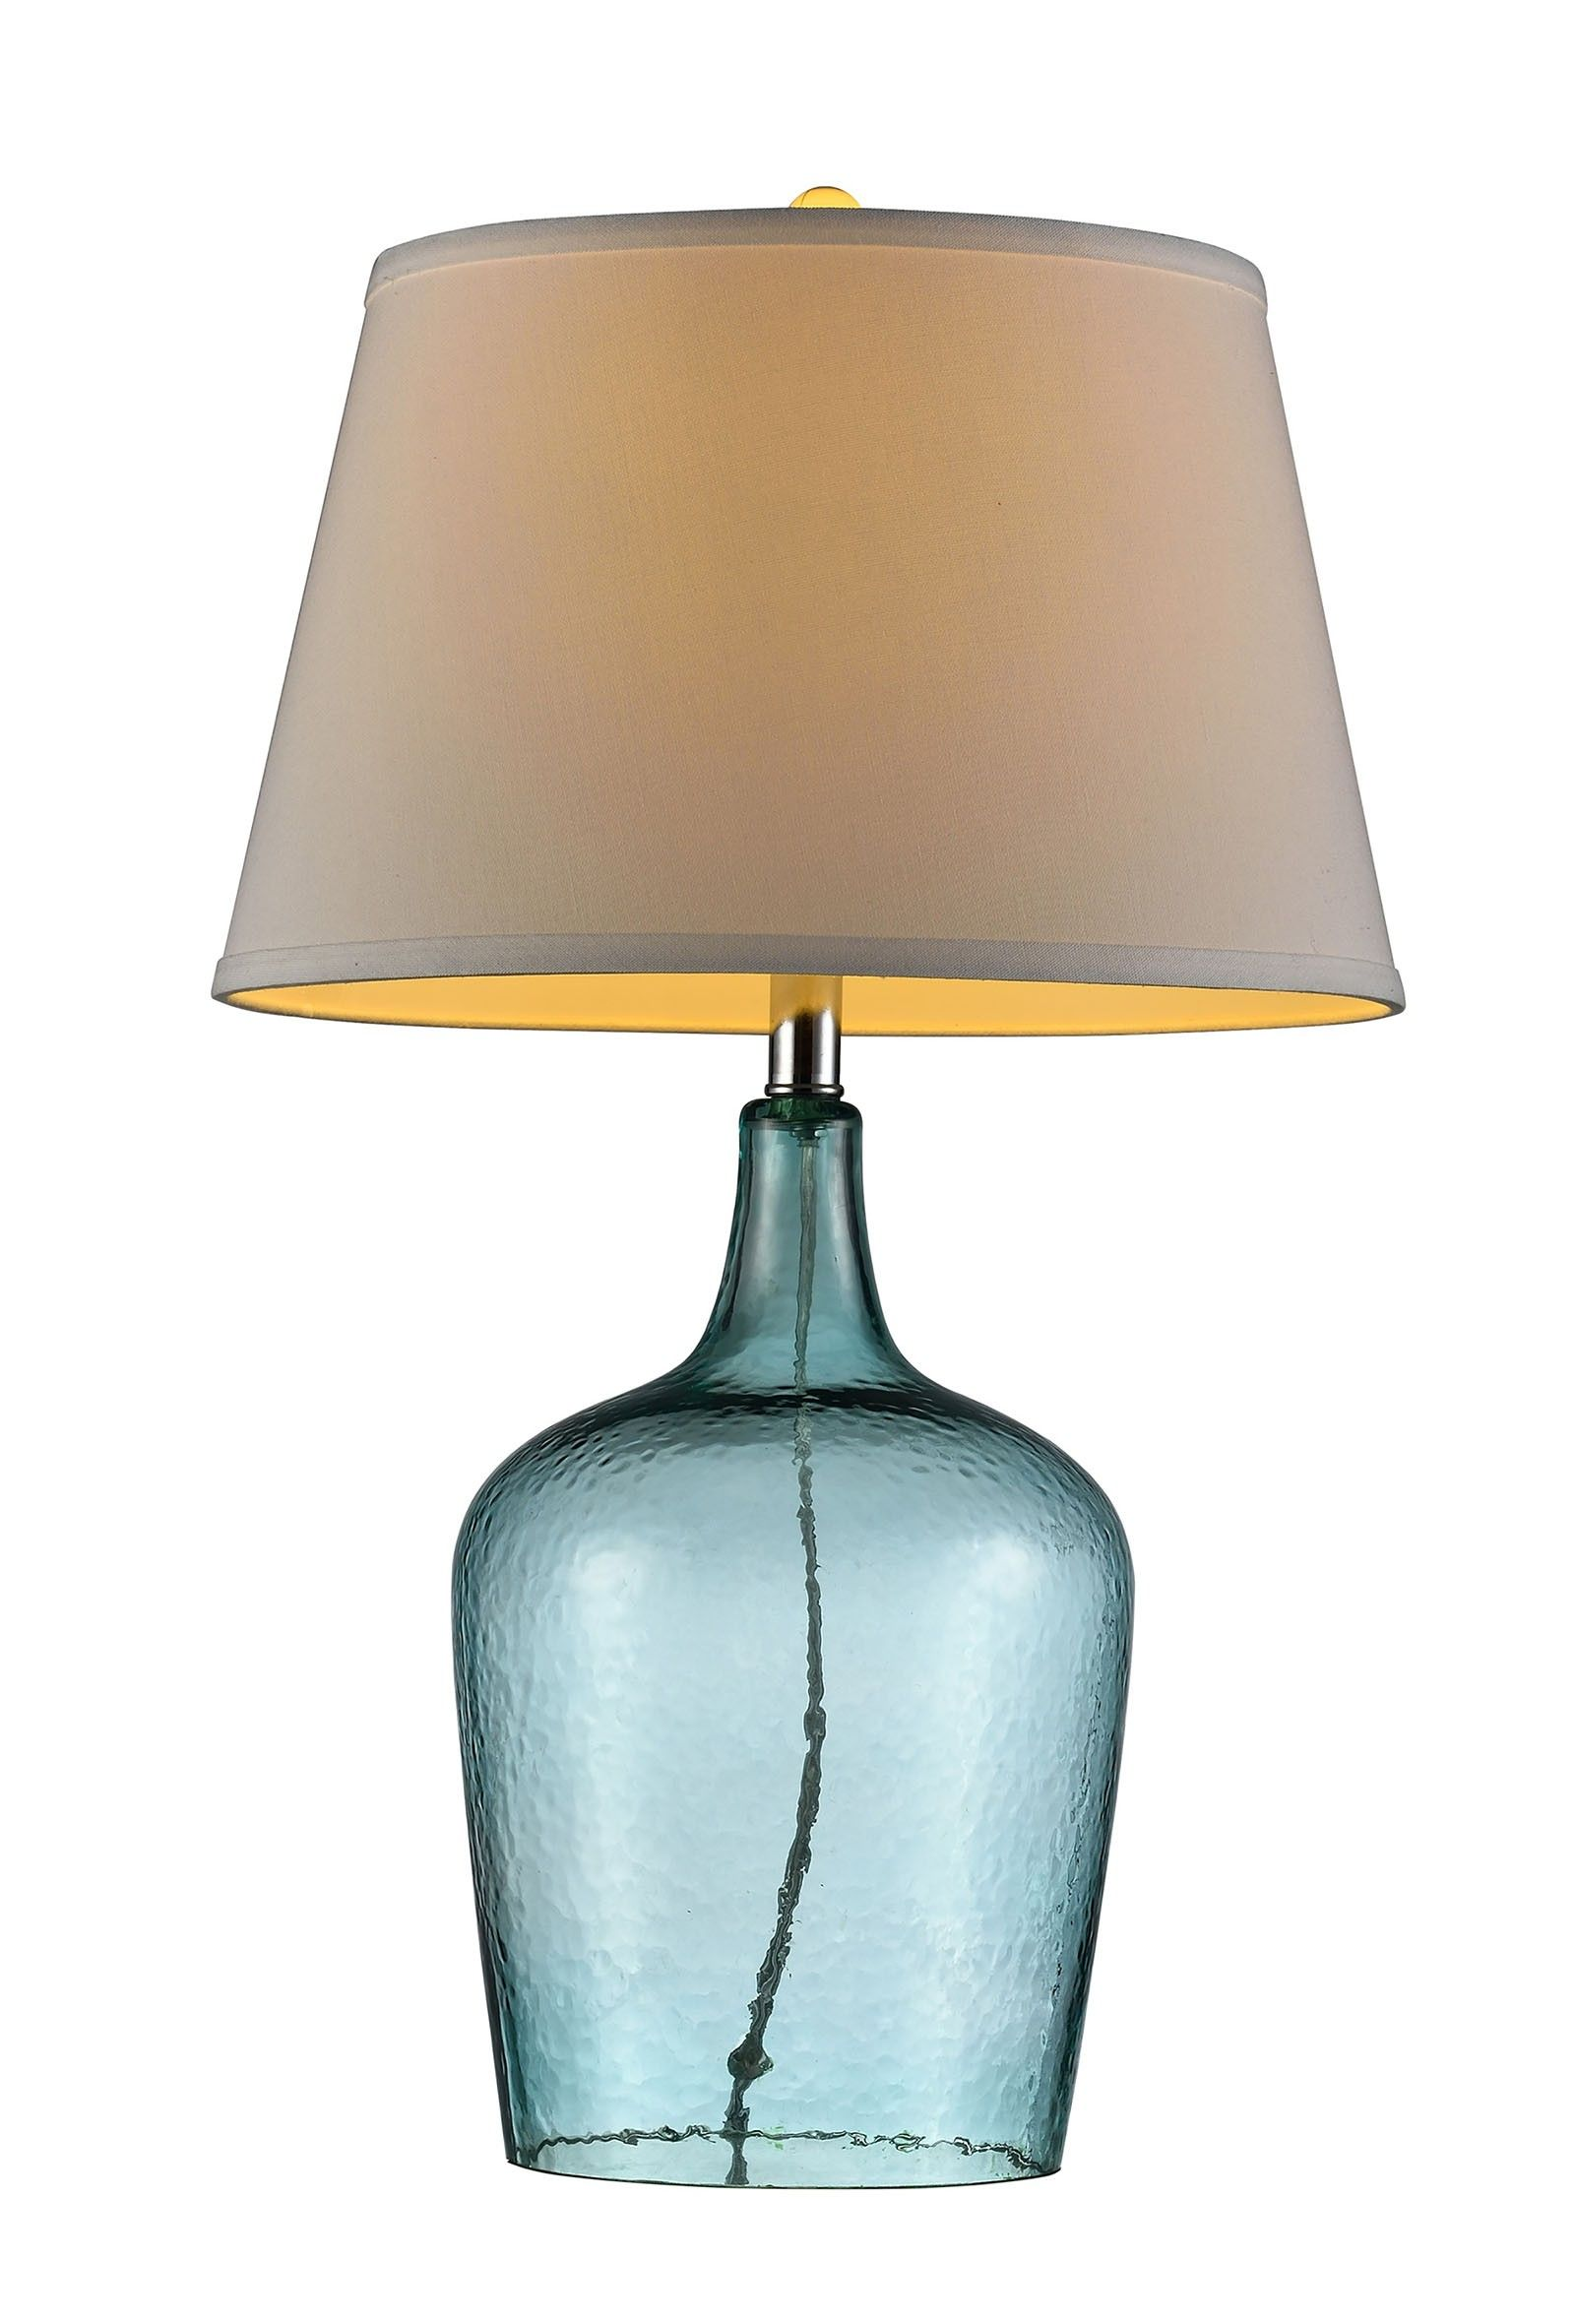 Alex Table Lamp In 2021 Table Lamp Lamp Glass Table Lamp